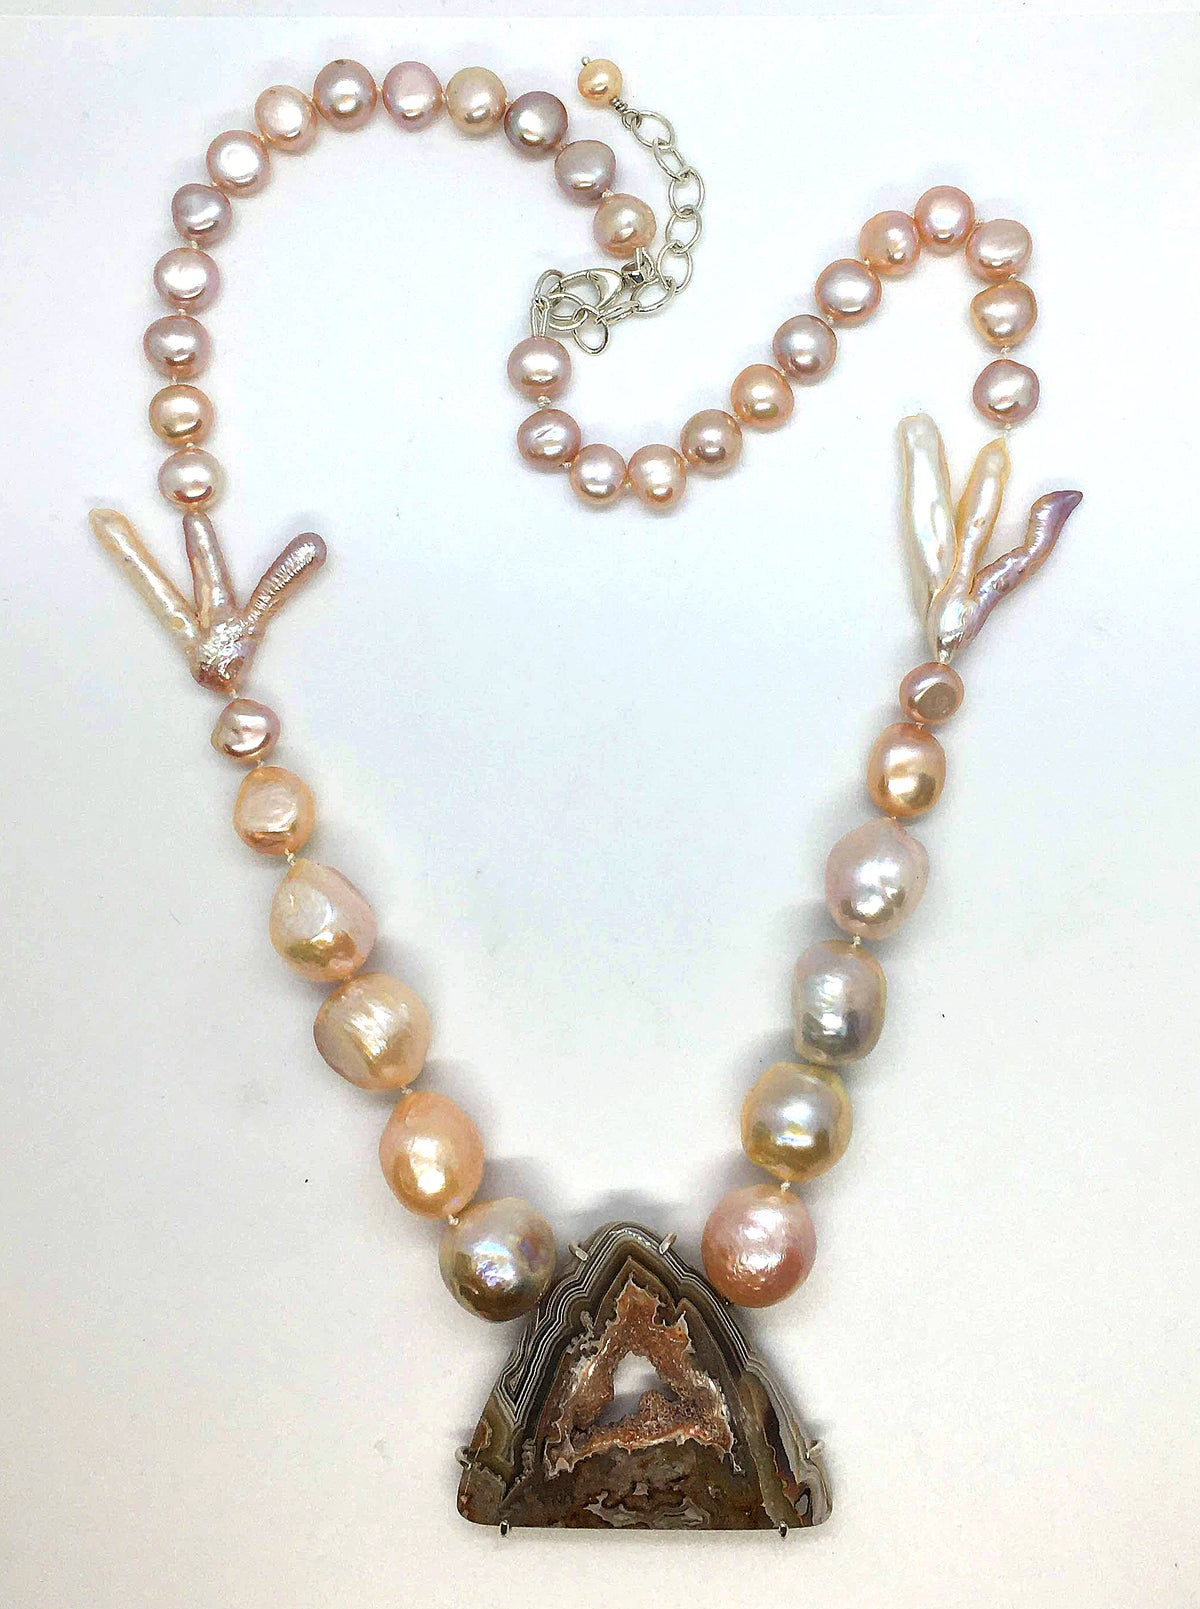 Image of Pearl Necklace with Agate Druzy Centerpiece